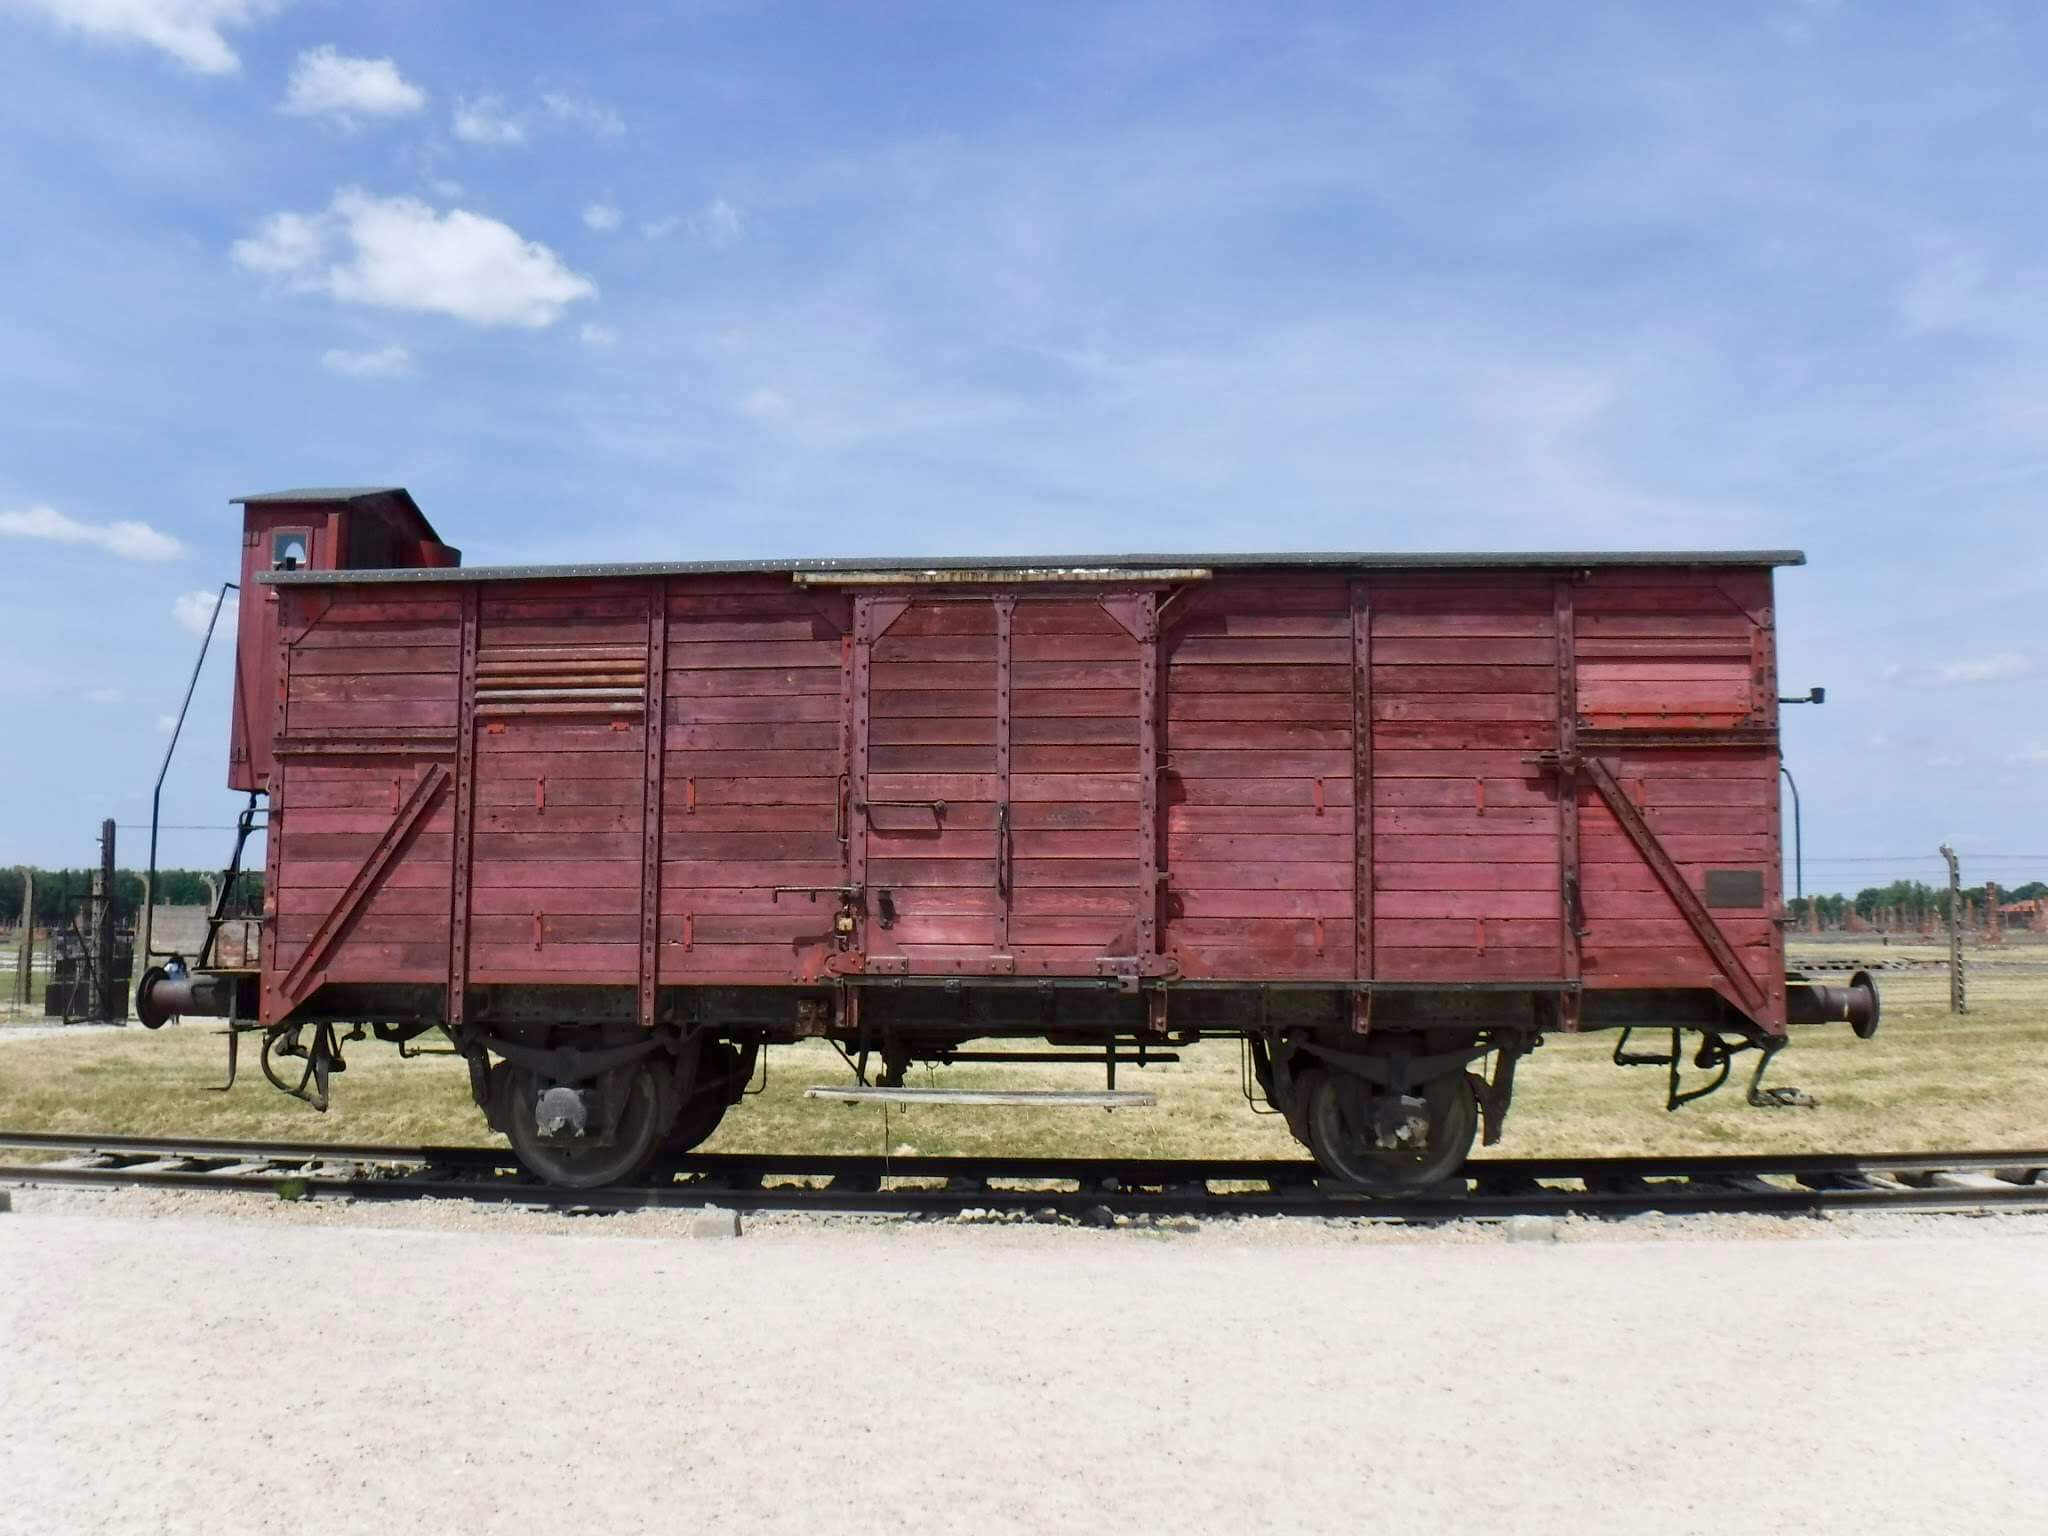 Auschwitz train car , They traveled for up to three days, no food or water, upwards of 70 persons per car...